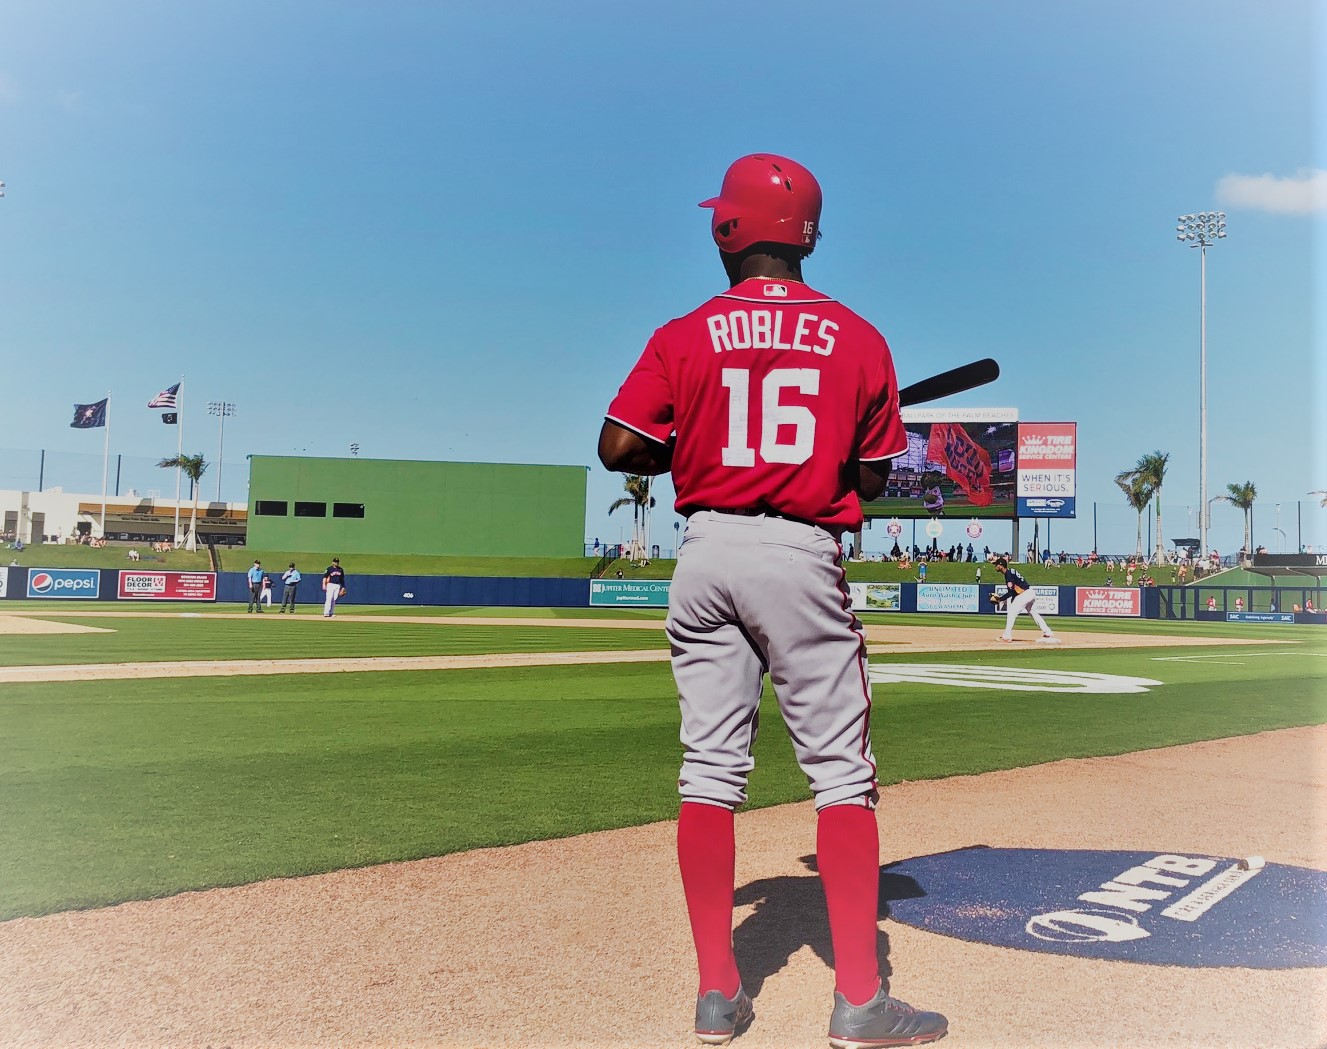 Victor-robles-2-23-18